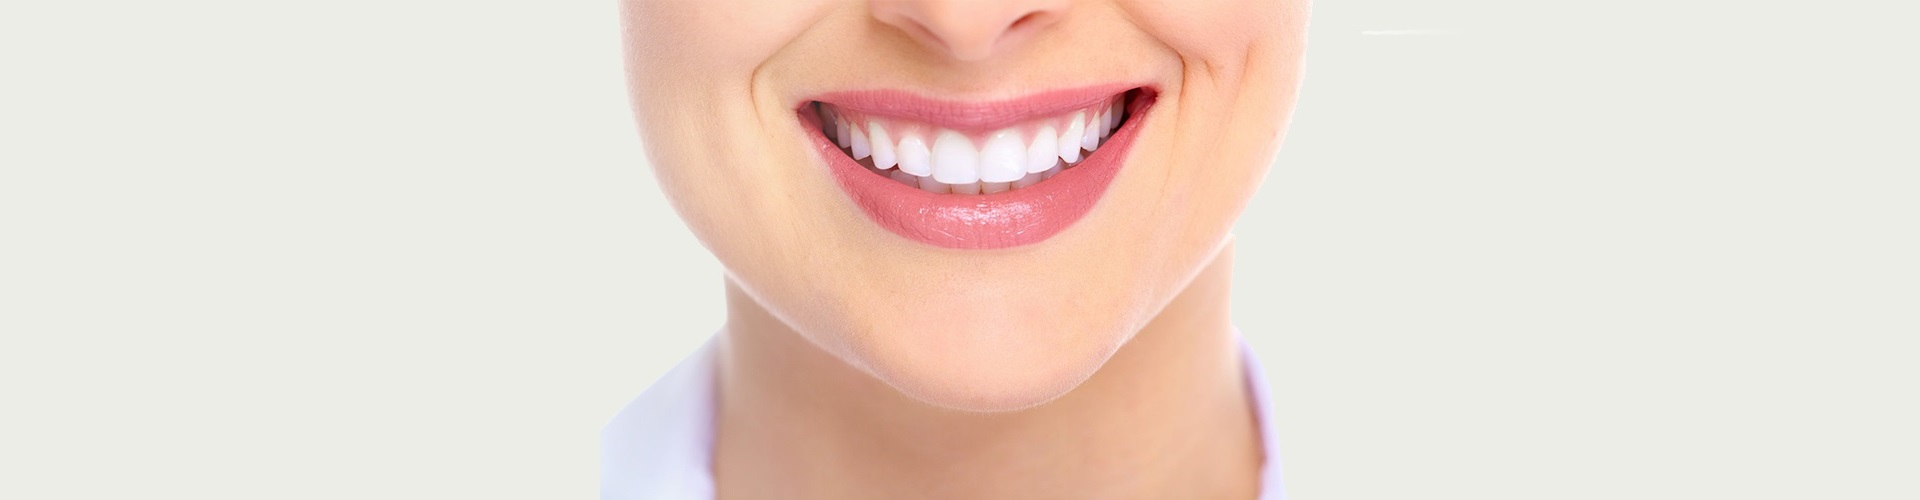 Dents En Porcelaine Dentiste Brossard Clinique Dentaire Brossard